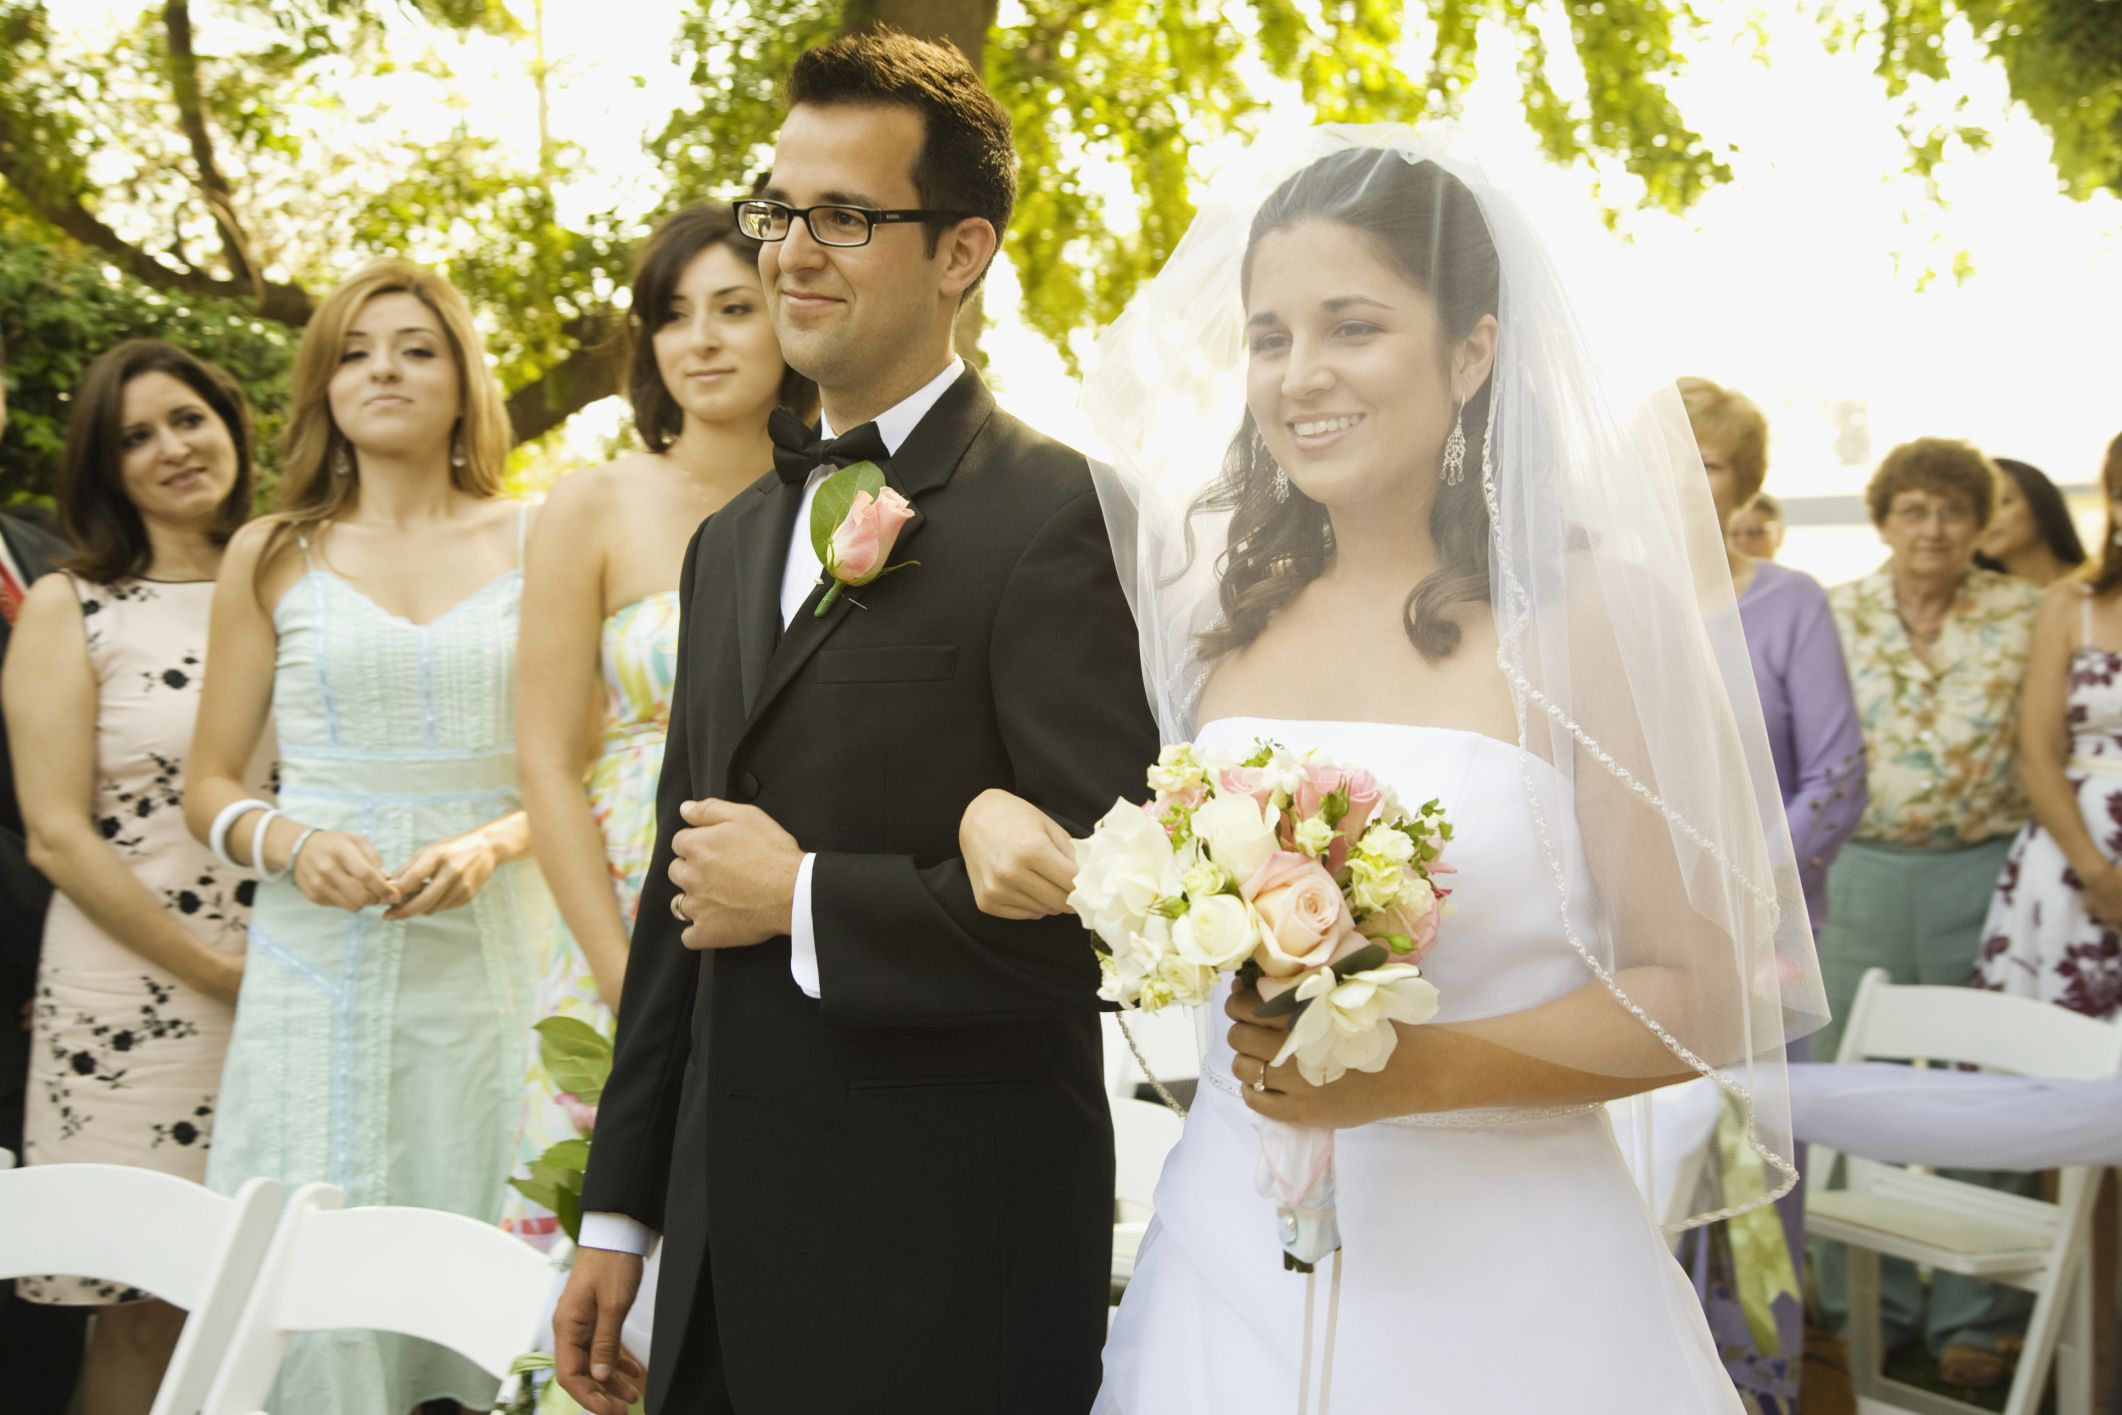 Common wedding ceremony songs to avoid junglespirit